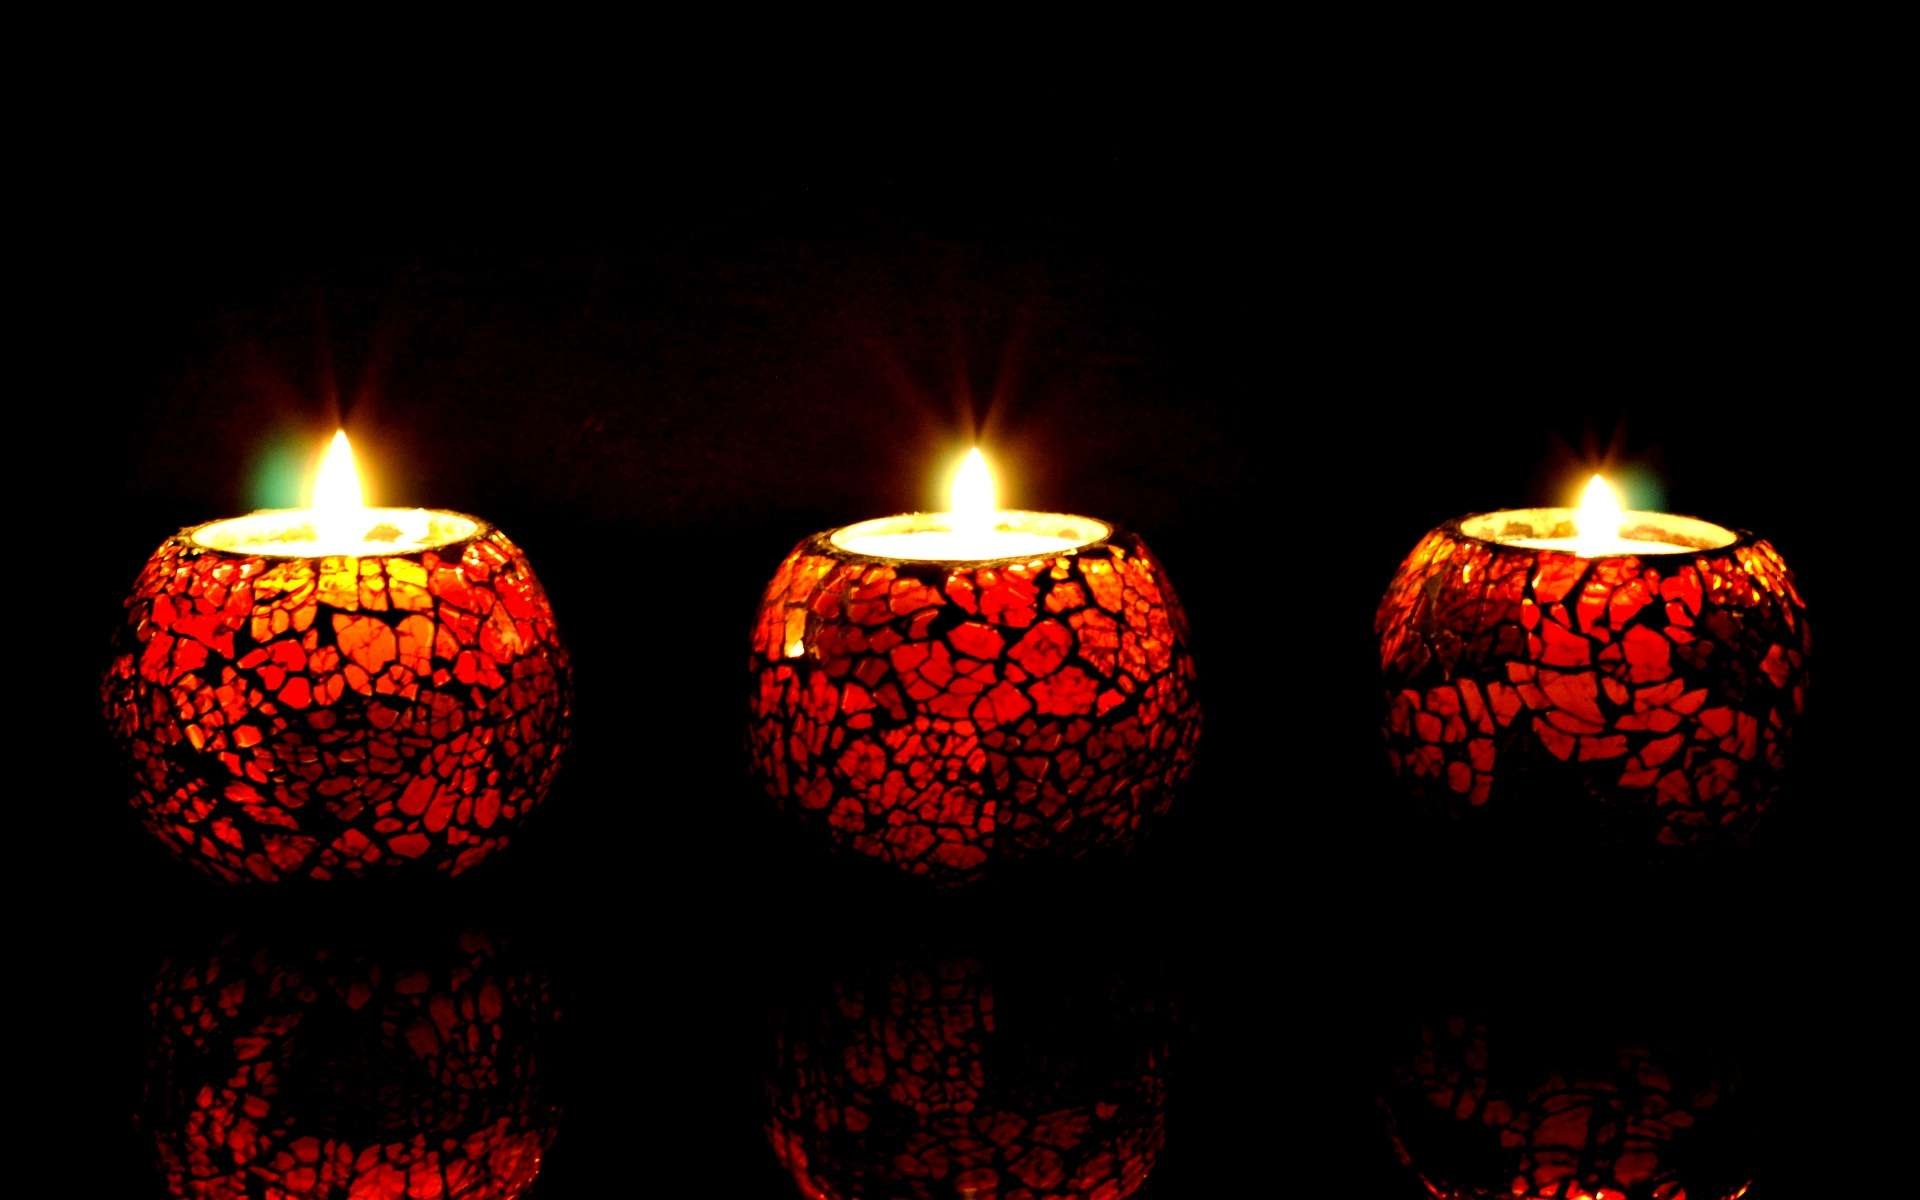 Candle Art Hd Wallpaper: Candles Wallpapers 21 : Hd Wallpapers